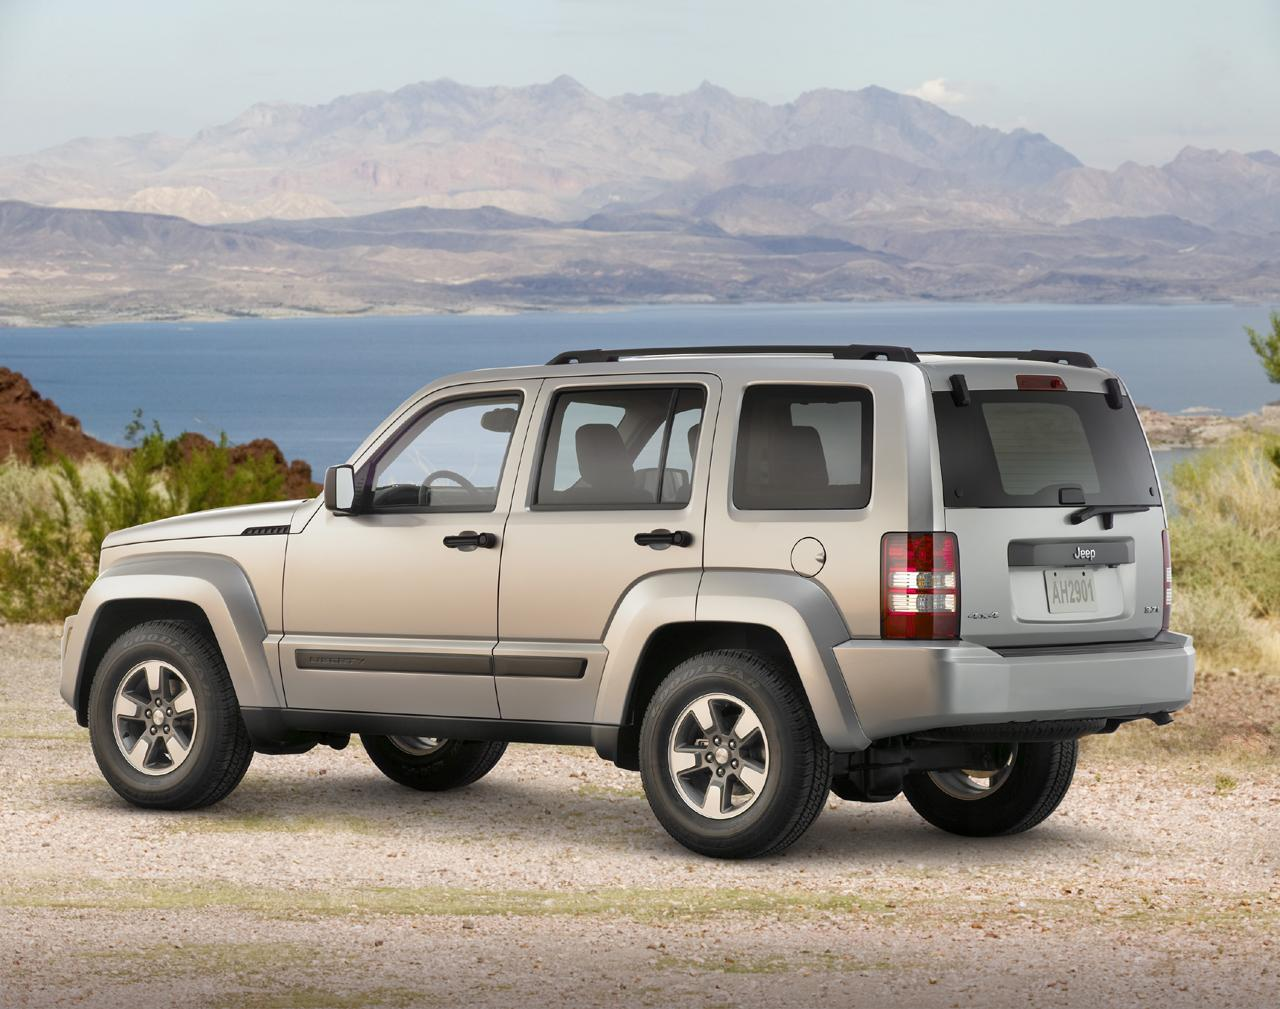 Jeep Renegade Comanche Price >> 2009 Jeep Liberty - Pictures - CarGurus